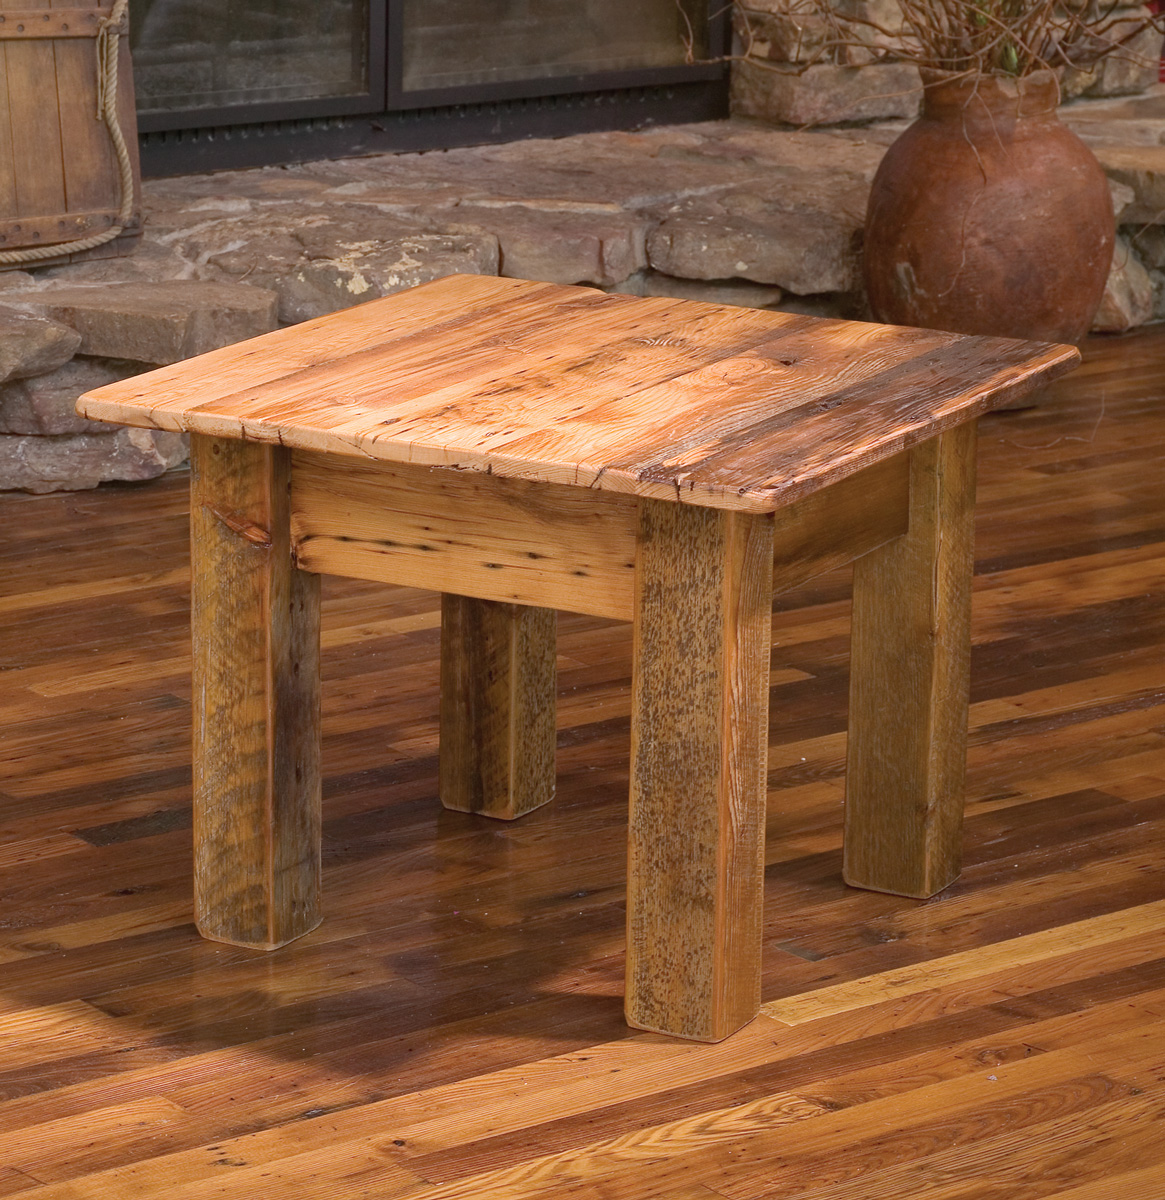 Reclaimed barn wood furniture at the galleria